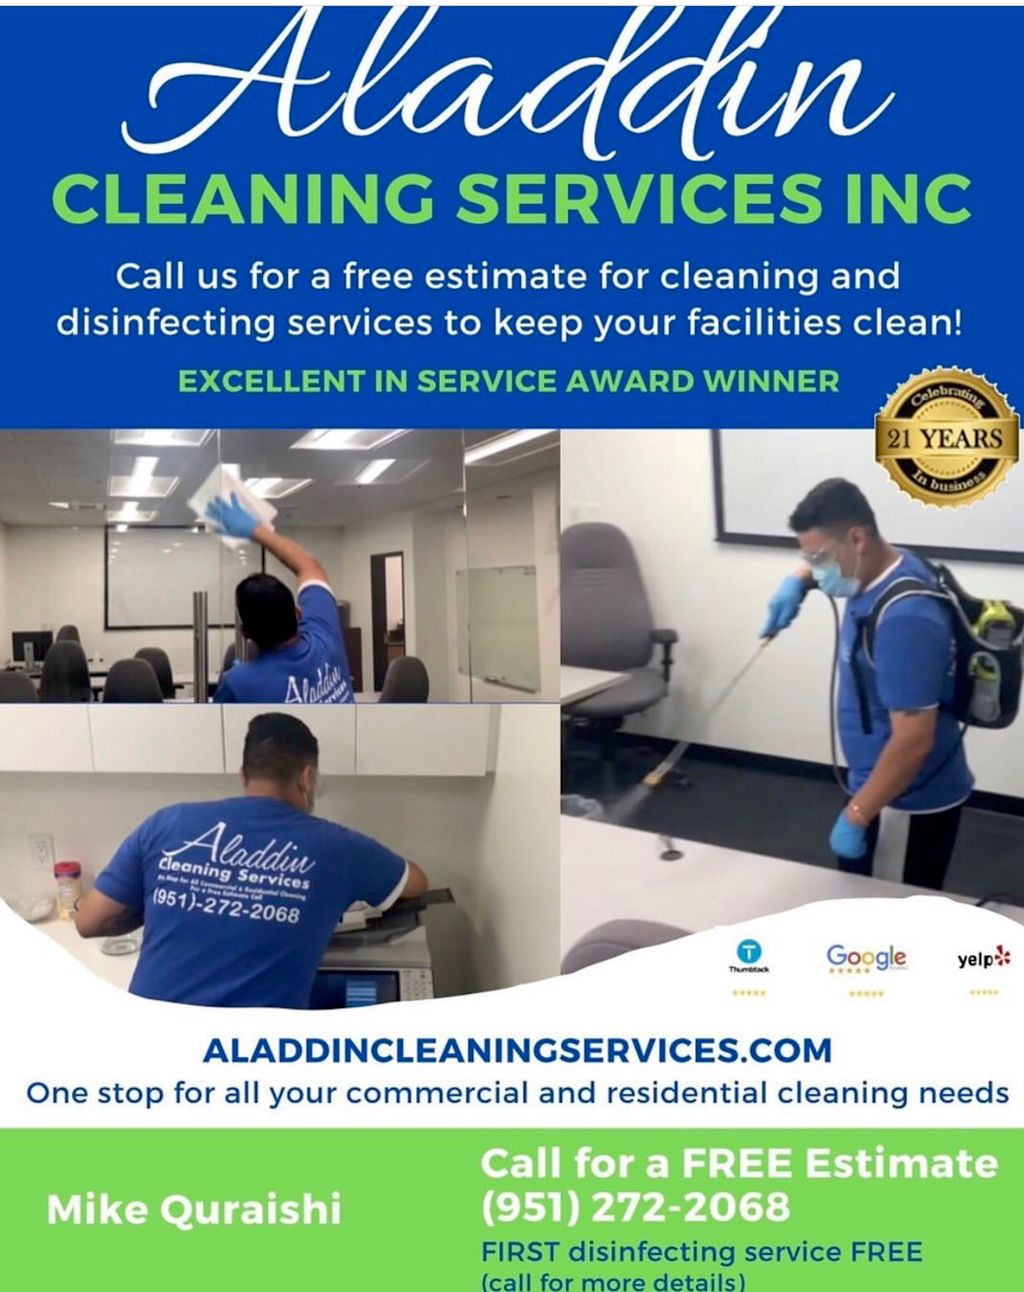 Aladdin Cleaning Services Inc.